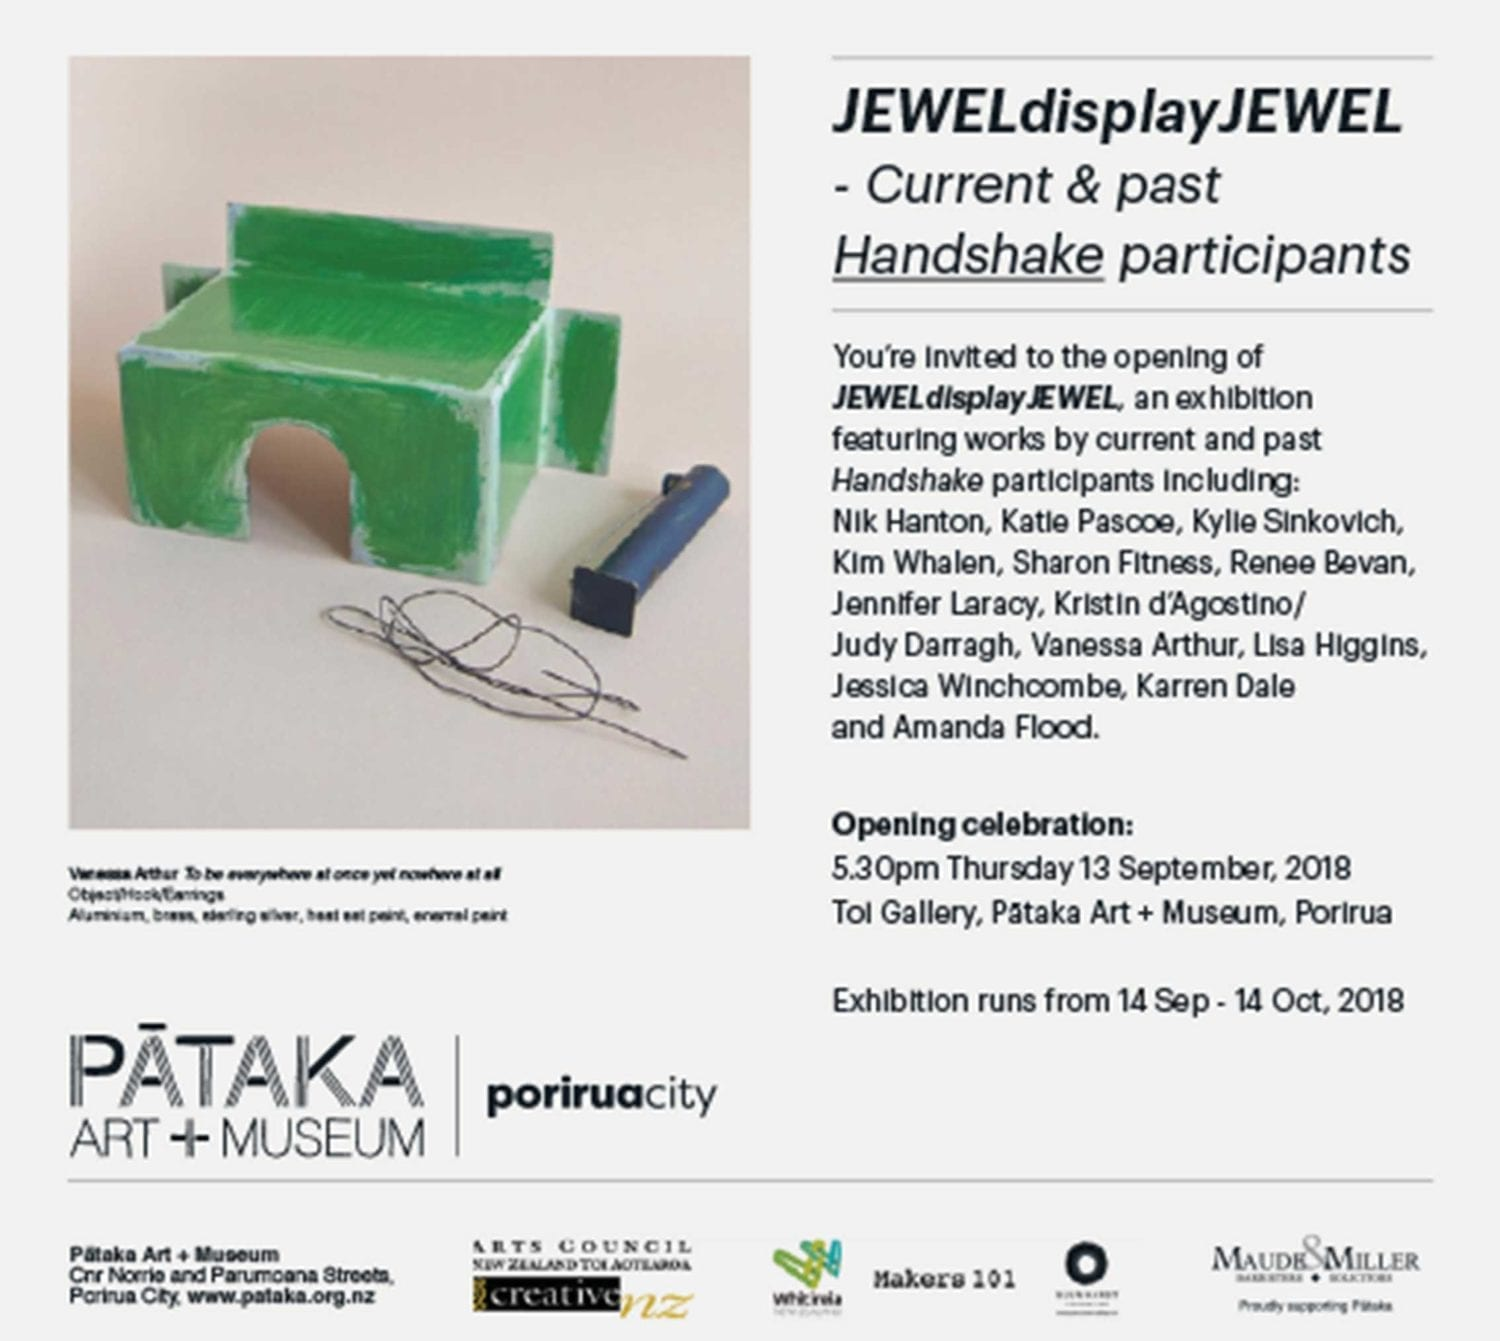 JEWELdisplayJEWEL exhibition invite v2